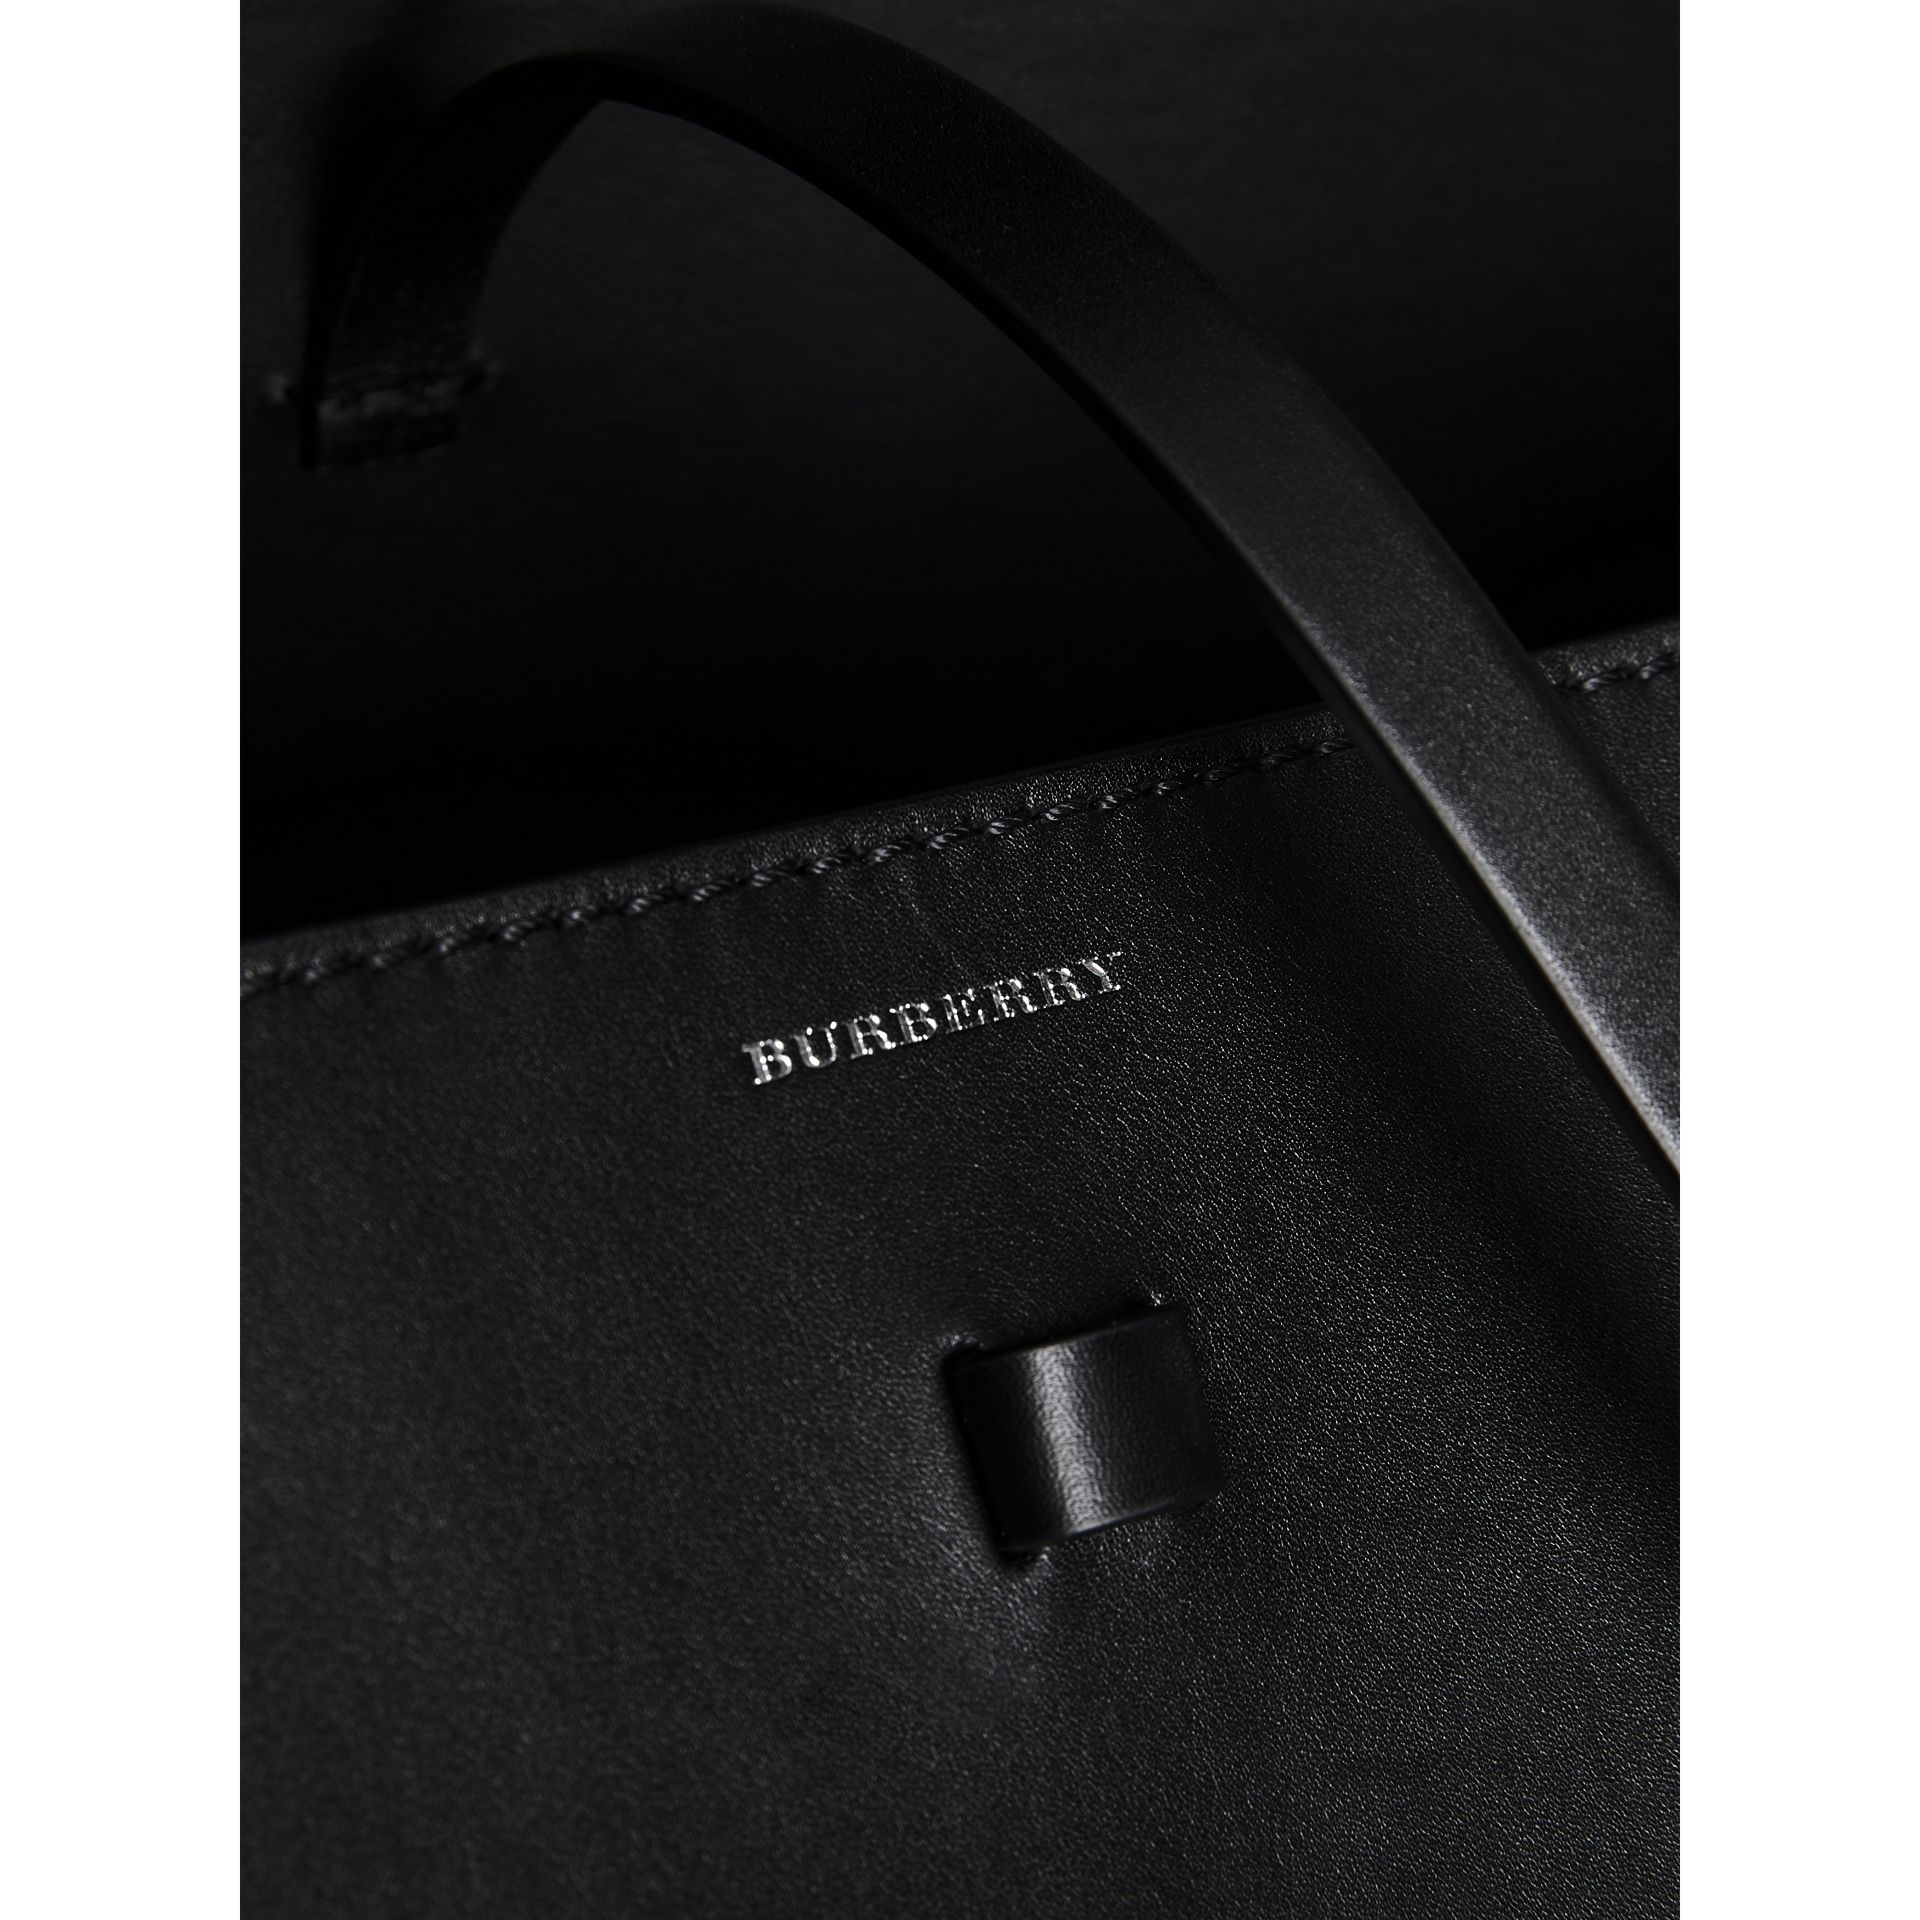 The Large Cotton Linen and Leather Bucket Bag in Black - Women | Burberry United Kingdom - gallery image 1